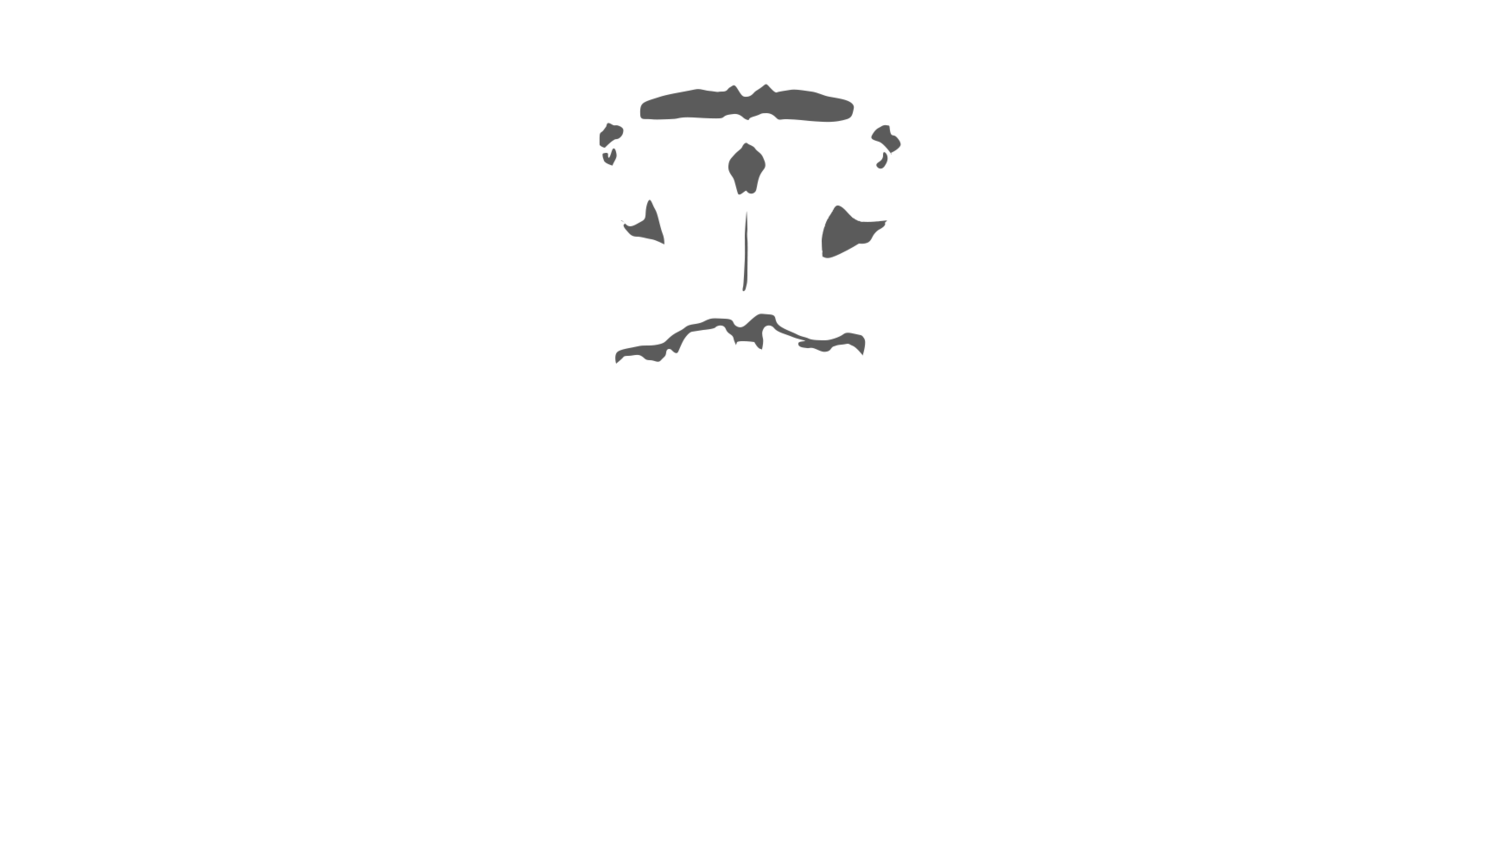 Cavity Records